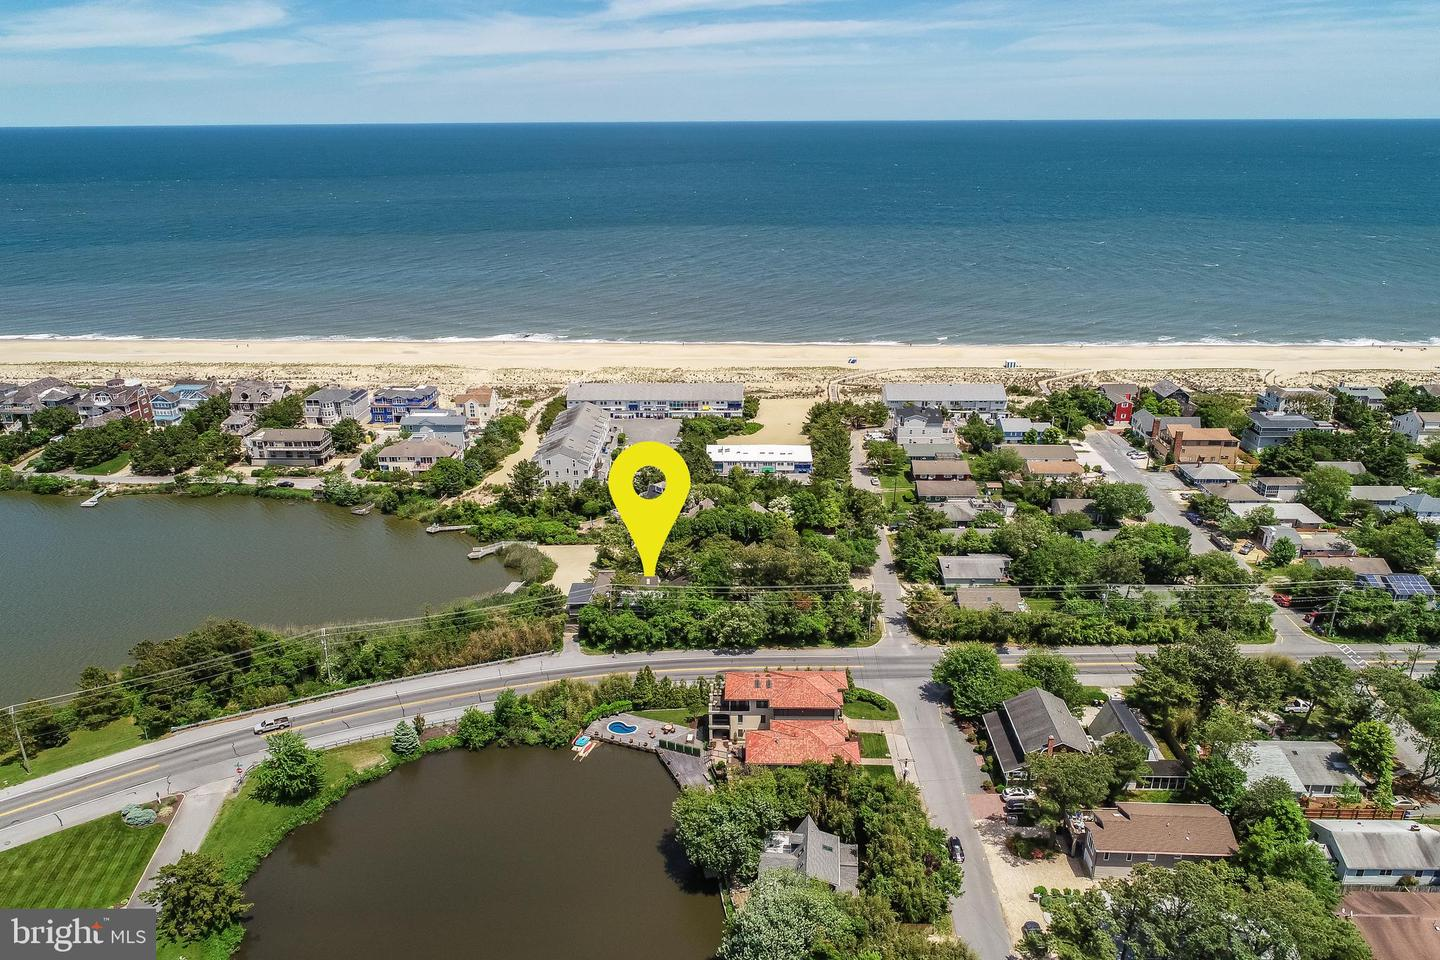 DESU157356-304047024809-2020-08-17-12-38-28 Sold Listings - Rehoboth Beach Real Estate - Bryce Lingo and Shaun Tull REALTORS, Rehoboth Beach, Delaware